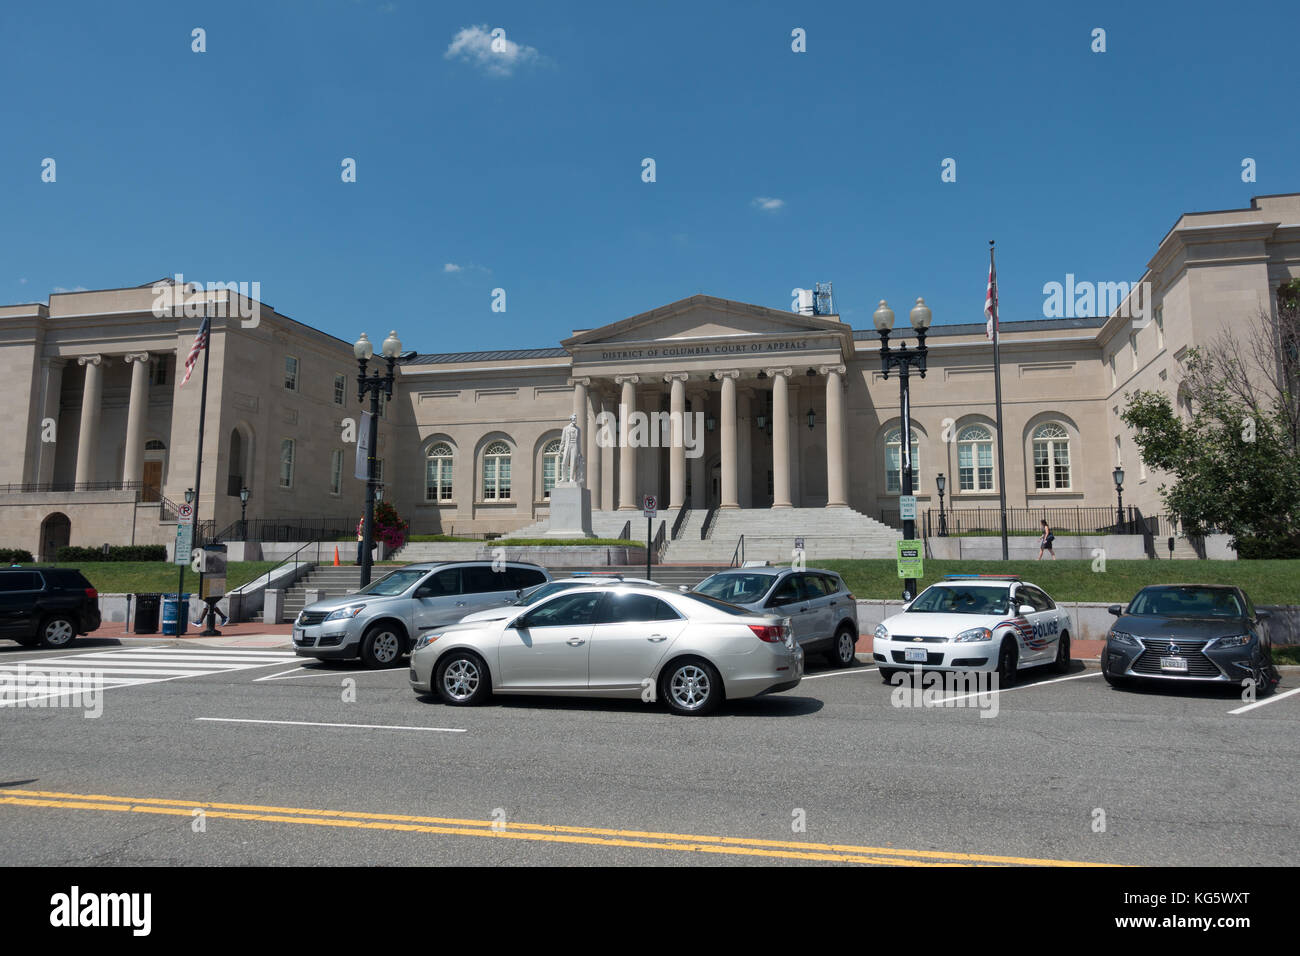 The District of Columbia Court of Appeals Building in Washington DC, United States. Stock Photo